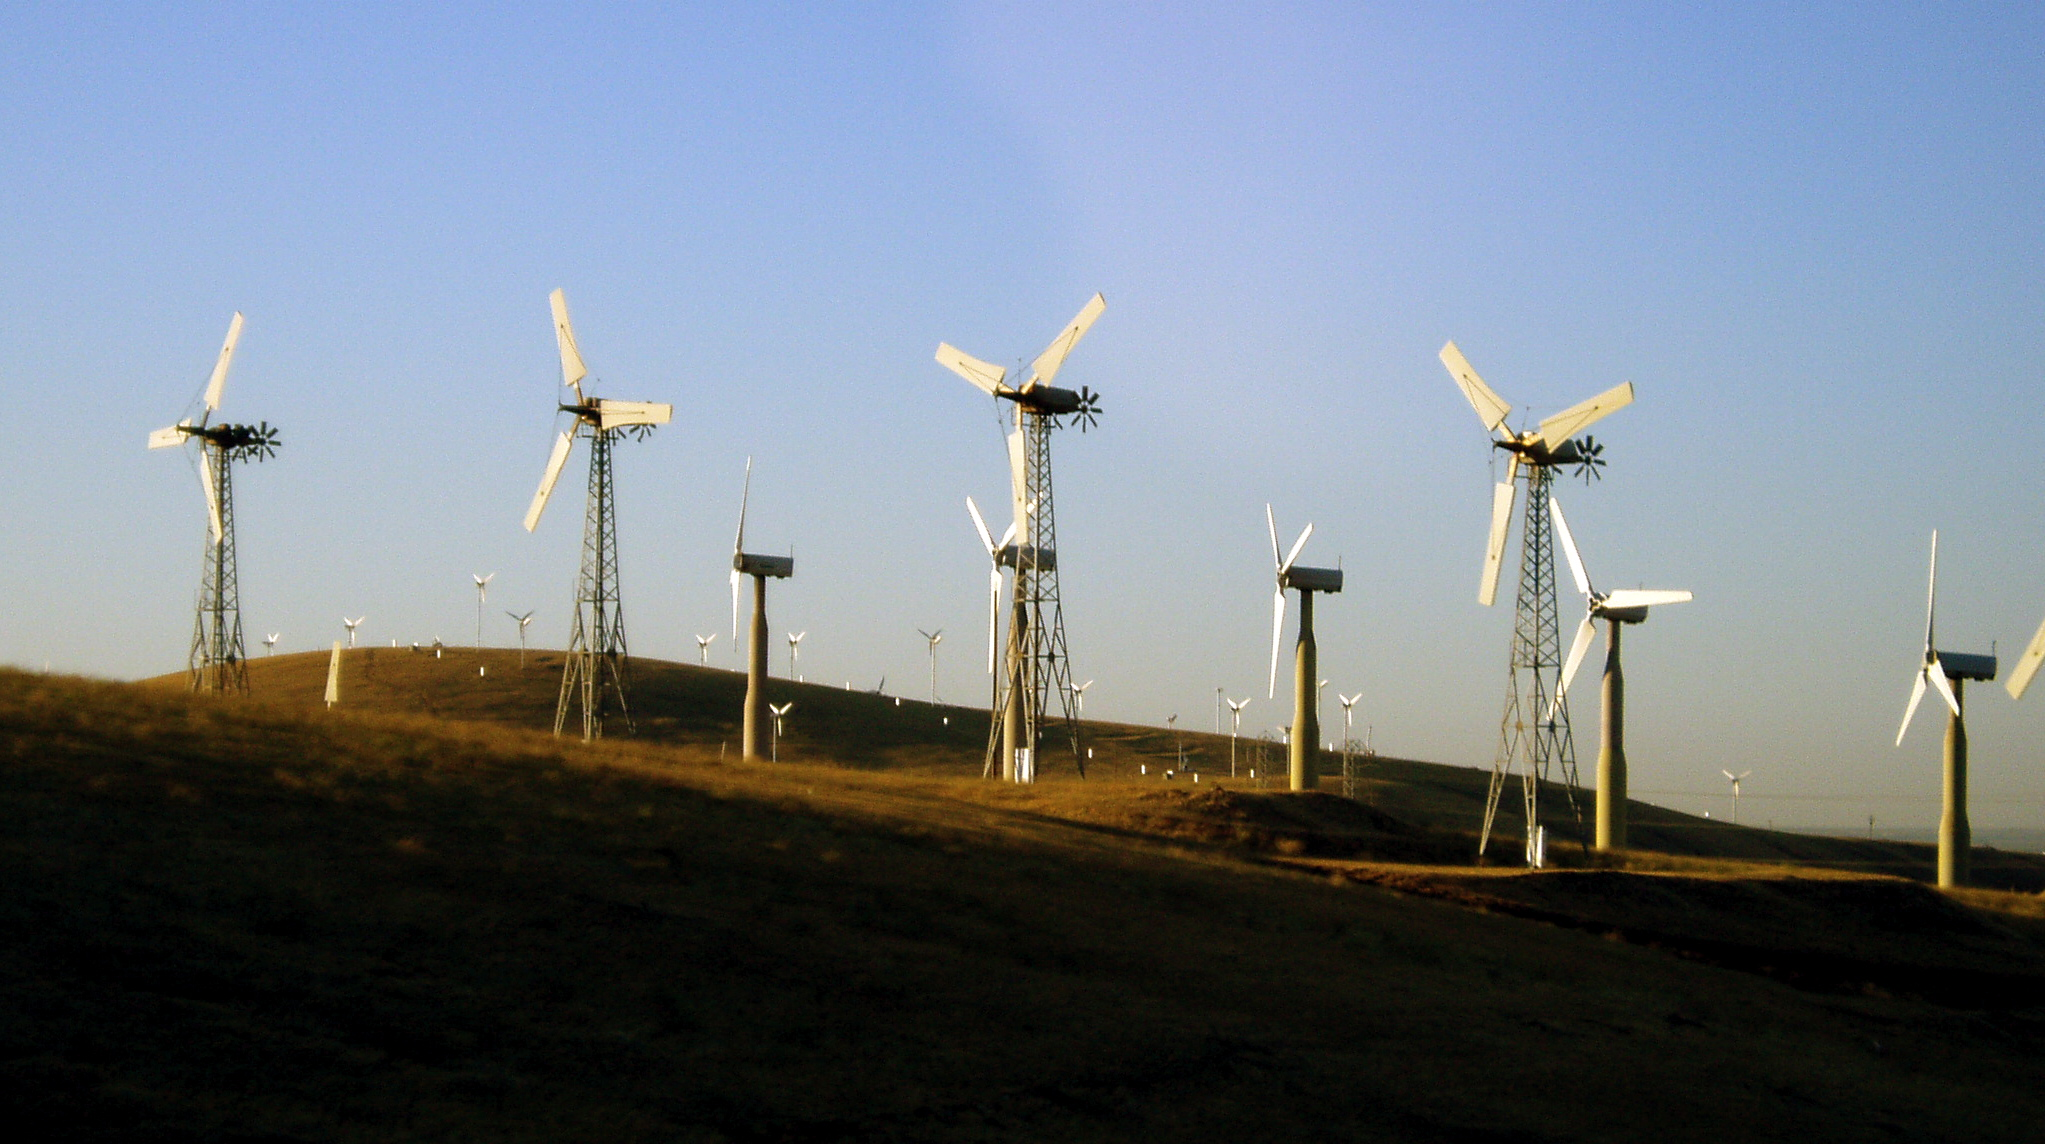 Promising Alternative Sources of Clean Energy: Wind and Solar